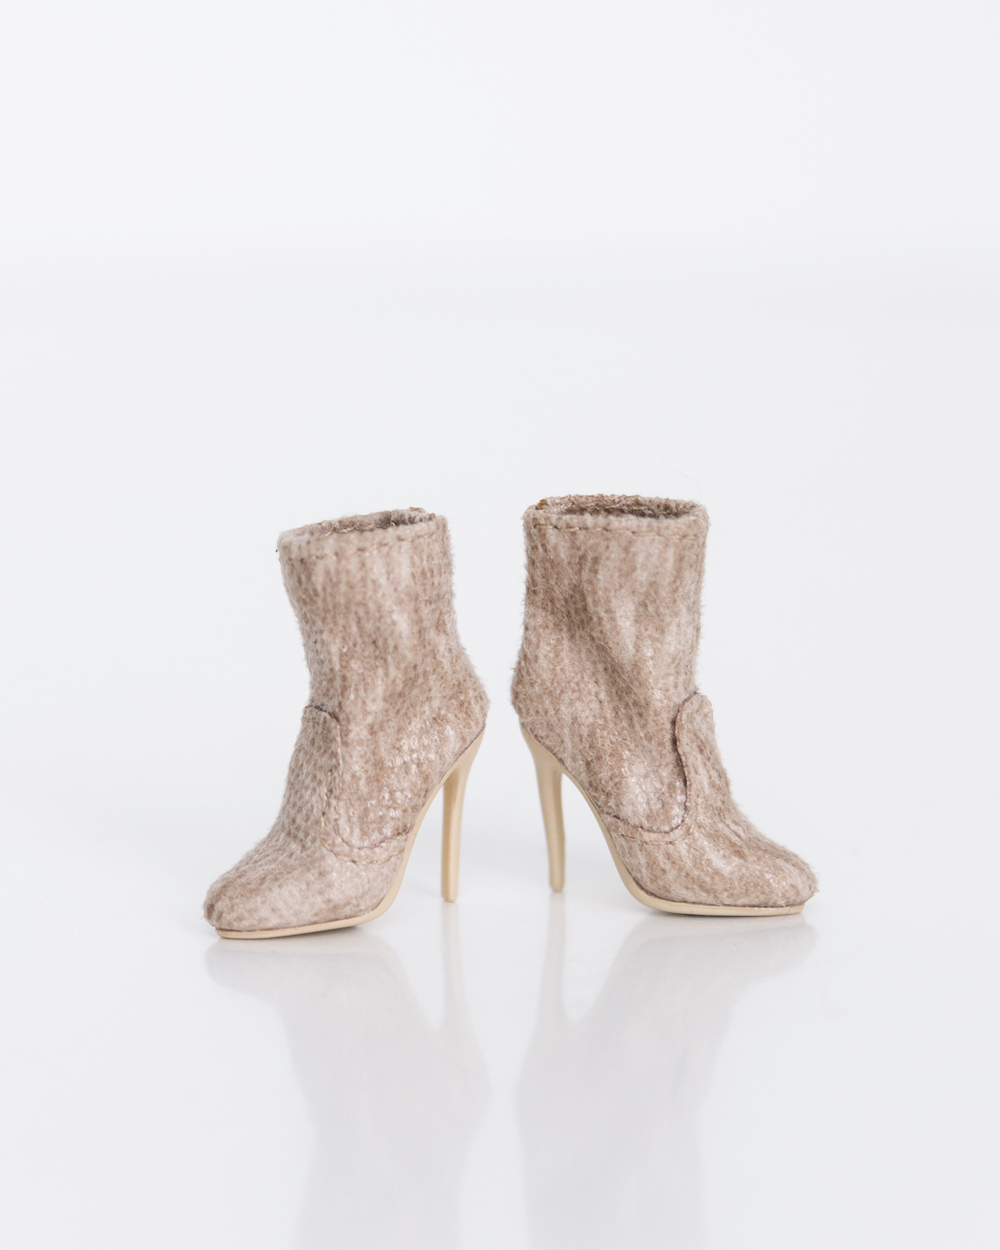 {Jordan} Ankle booties in textured beige. With matching heels.